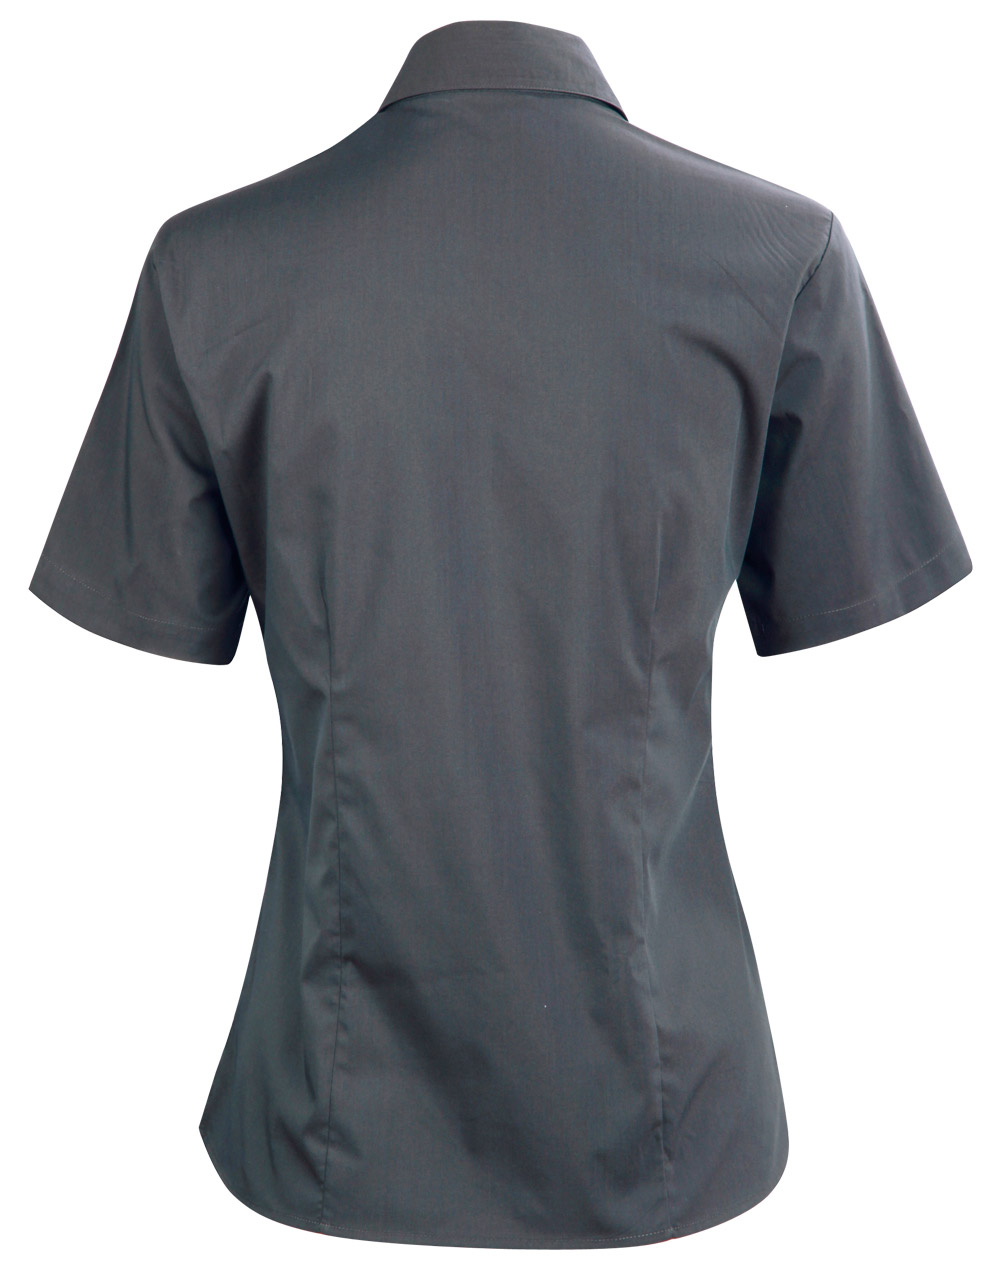 https://s3-ap-southeast-1.amazonaws.com/ws-imgs/BUSINESSSHIRTS/BS07S_Charcoal_Back.jpg